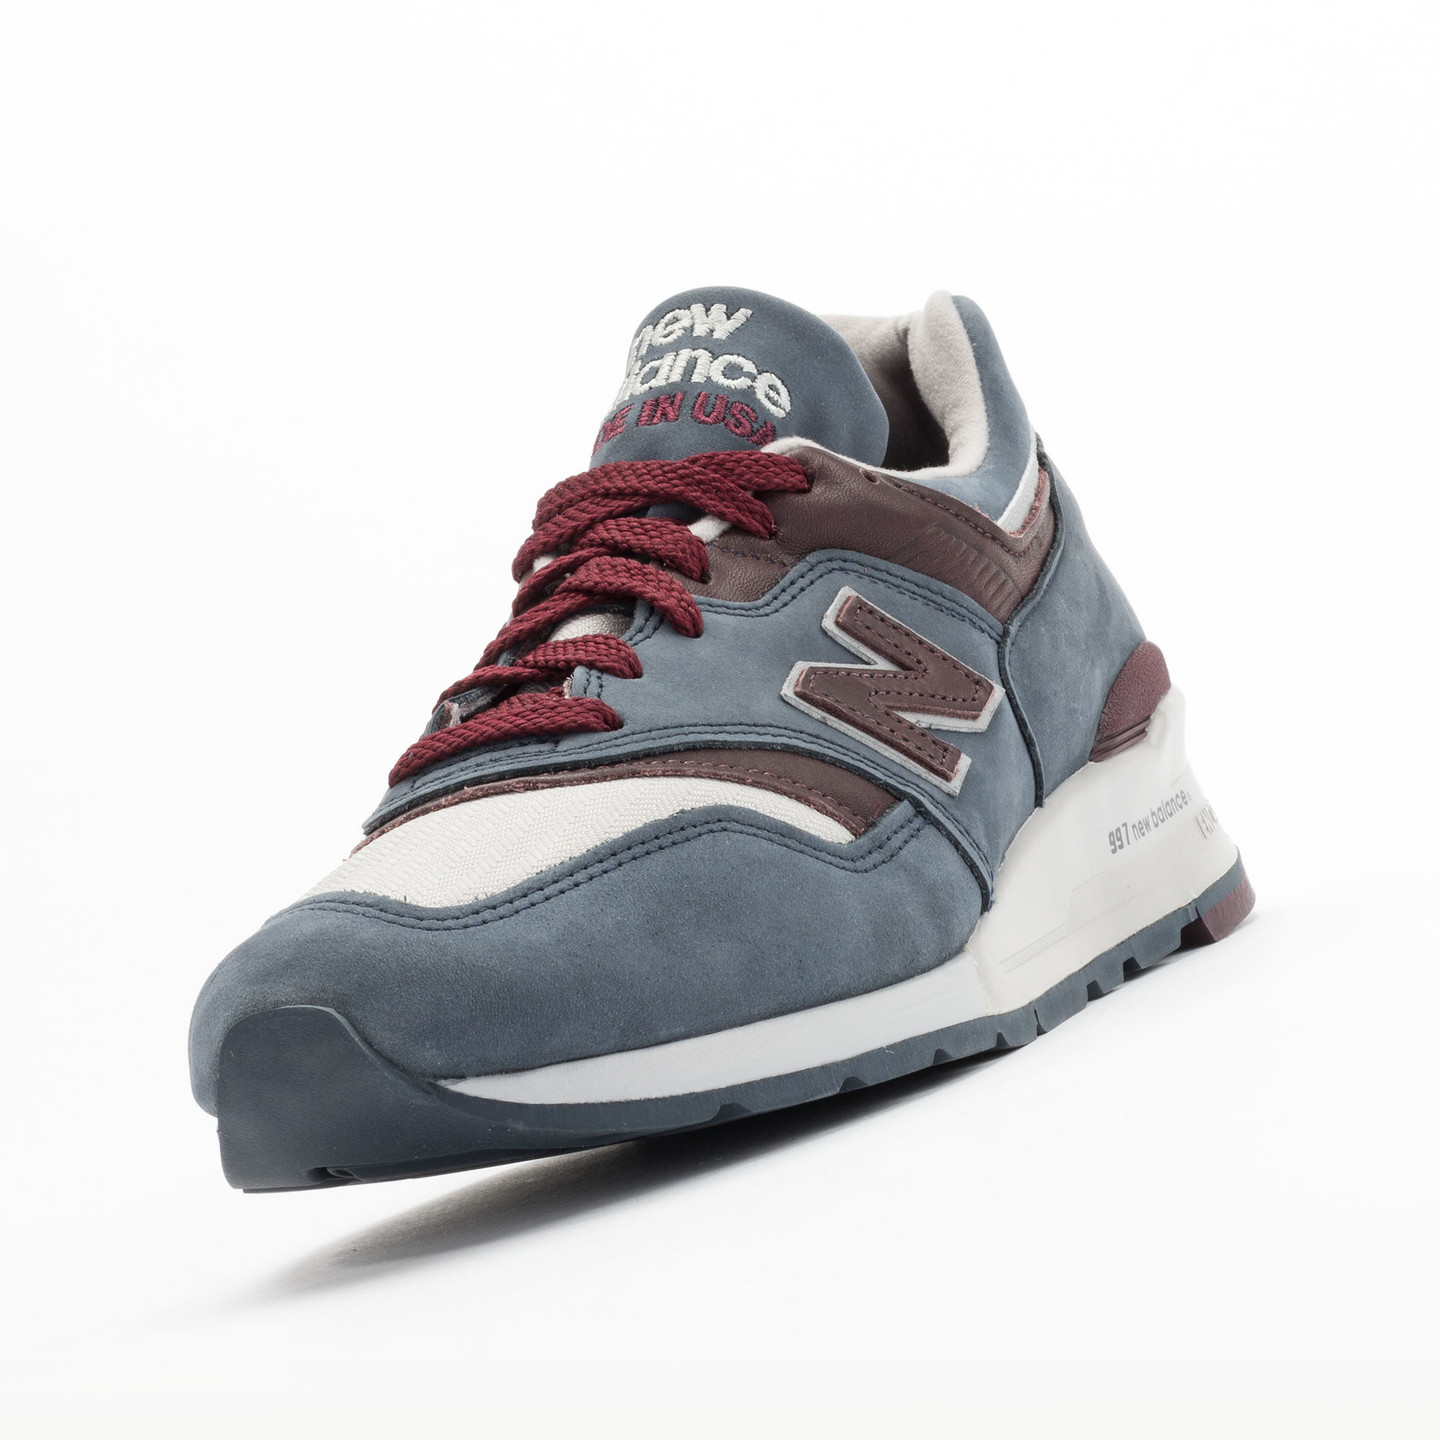 New Balance M997 DGM - Made in USA Grey Steel / Burgundy M997DGM-43